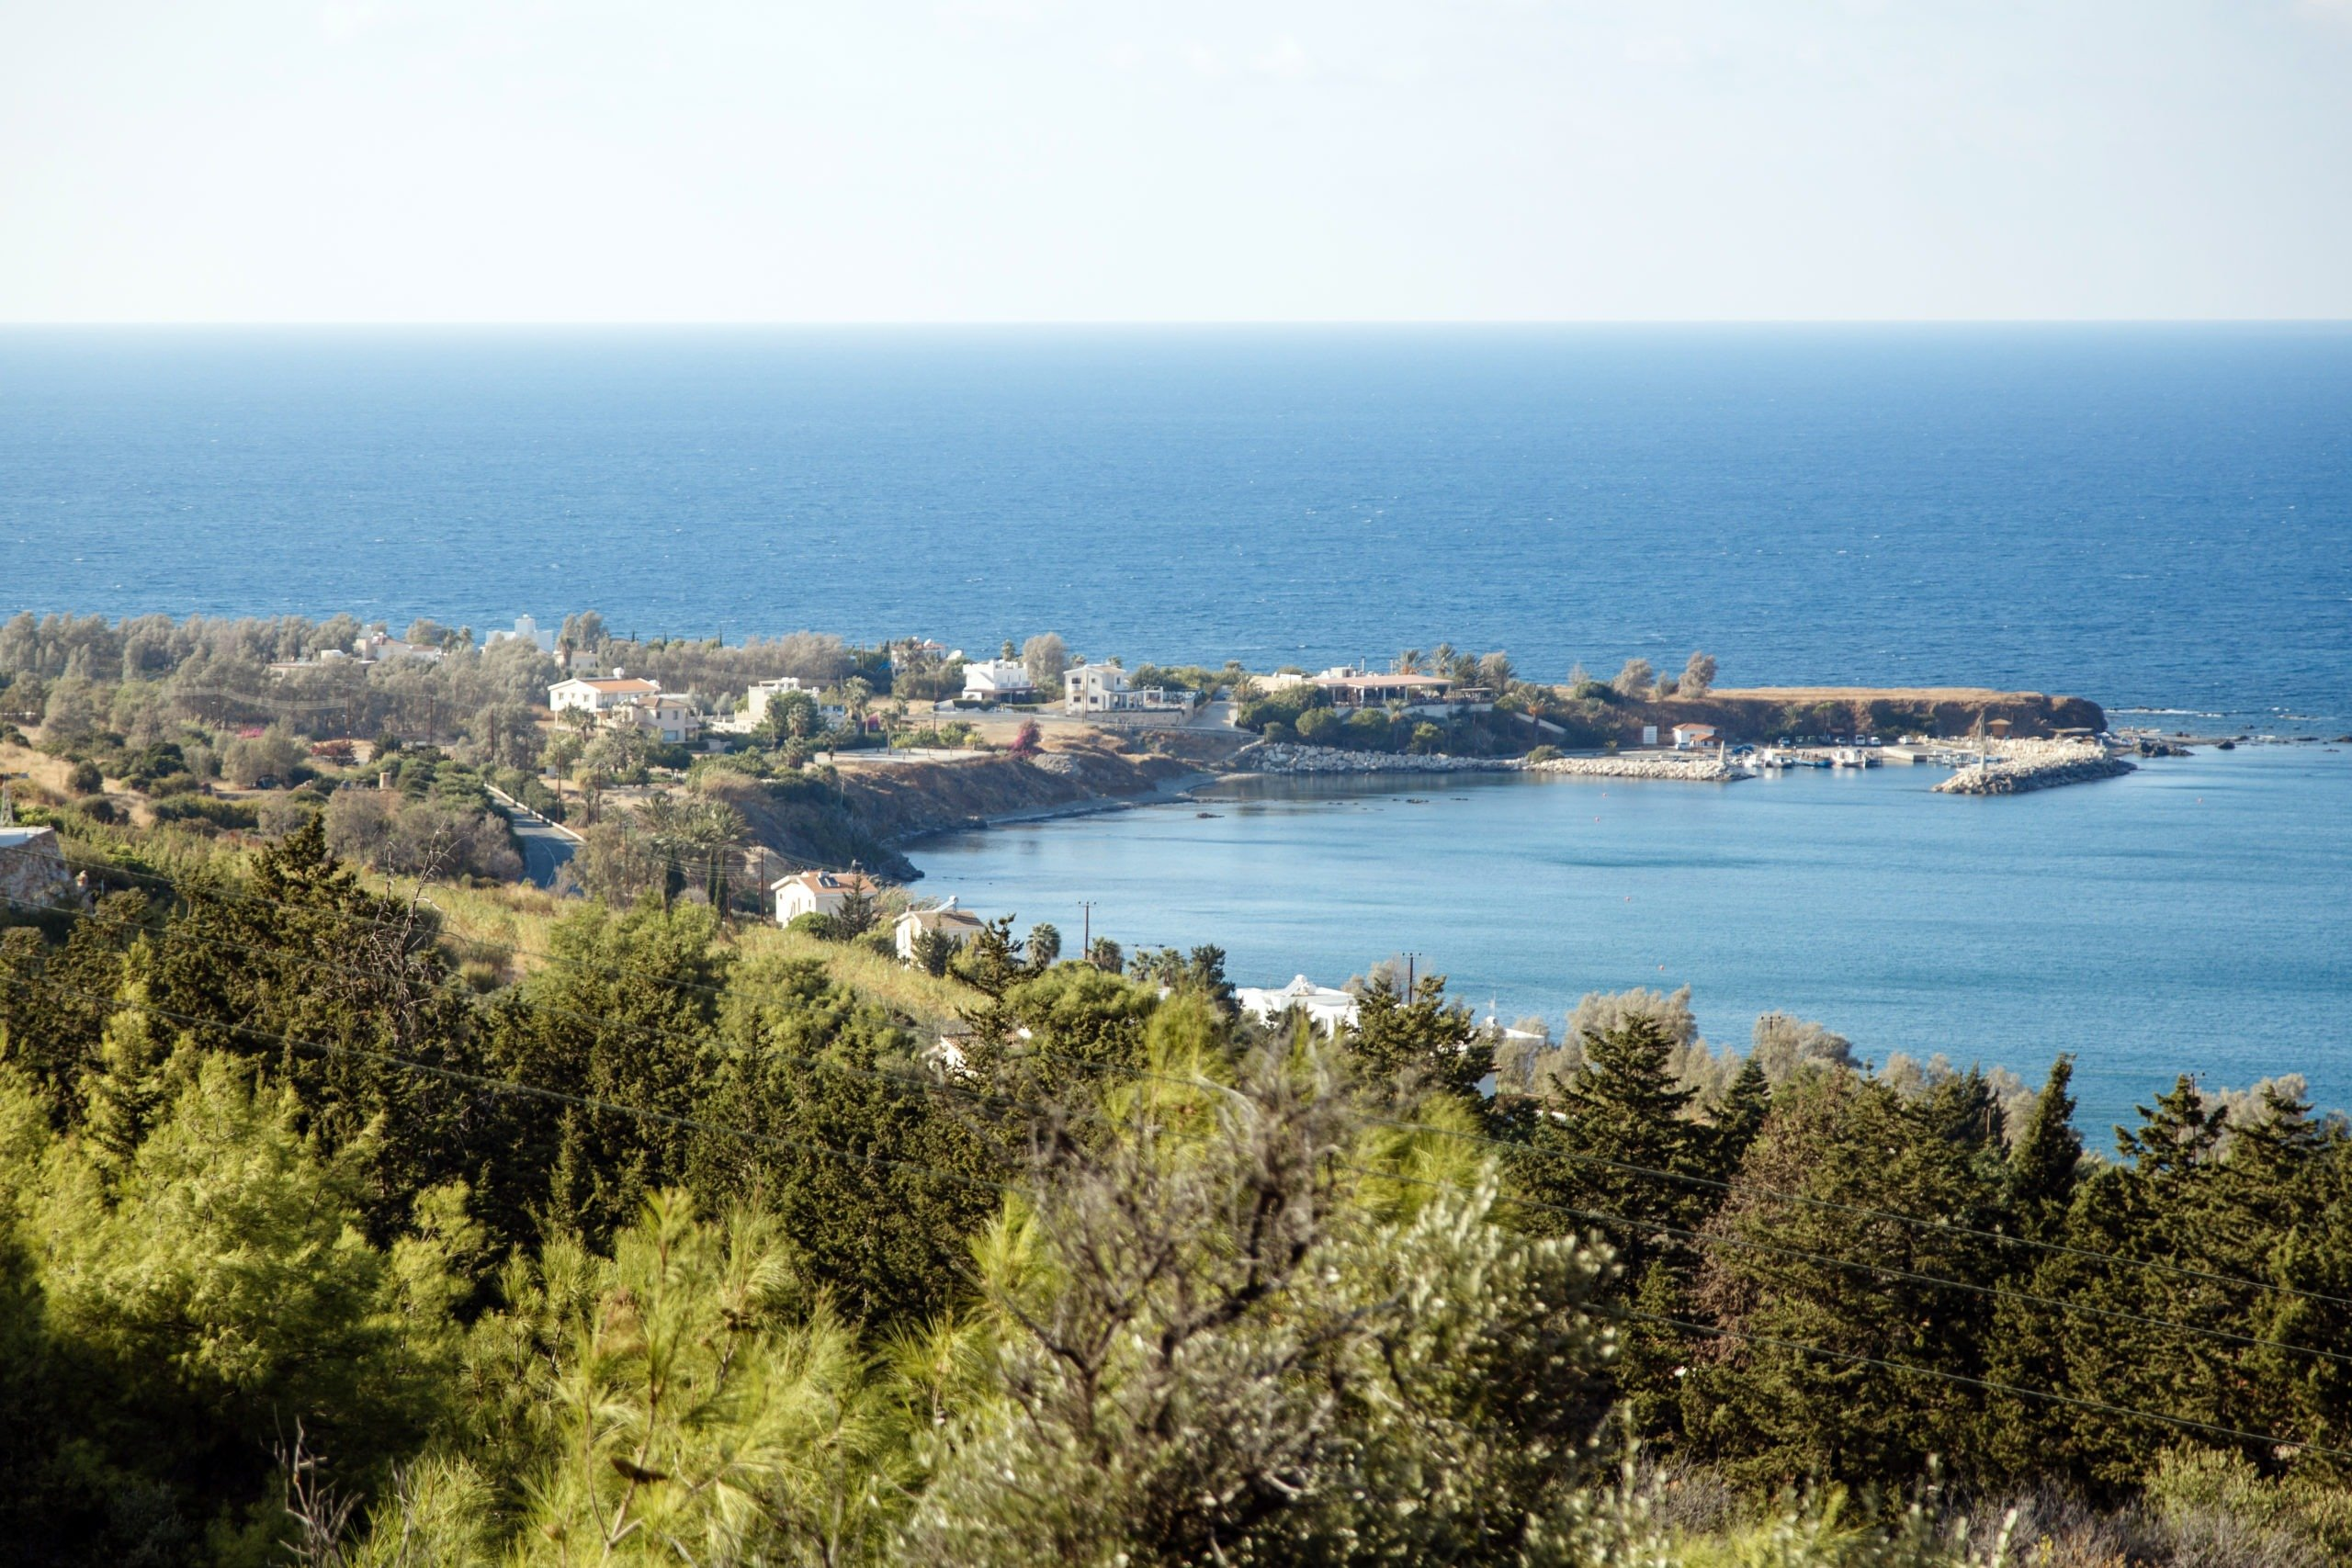 The view to Pomos harbour